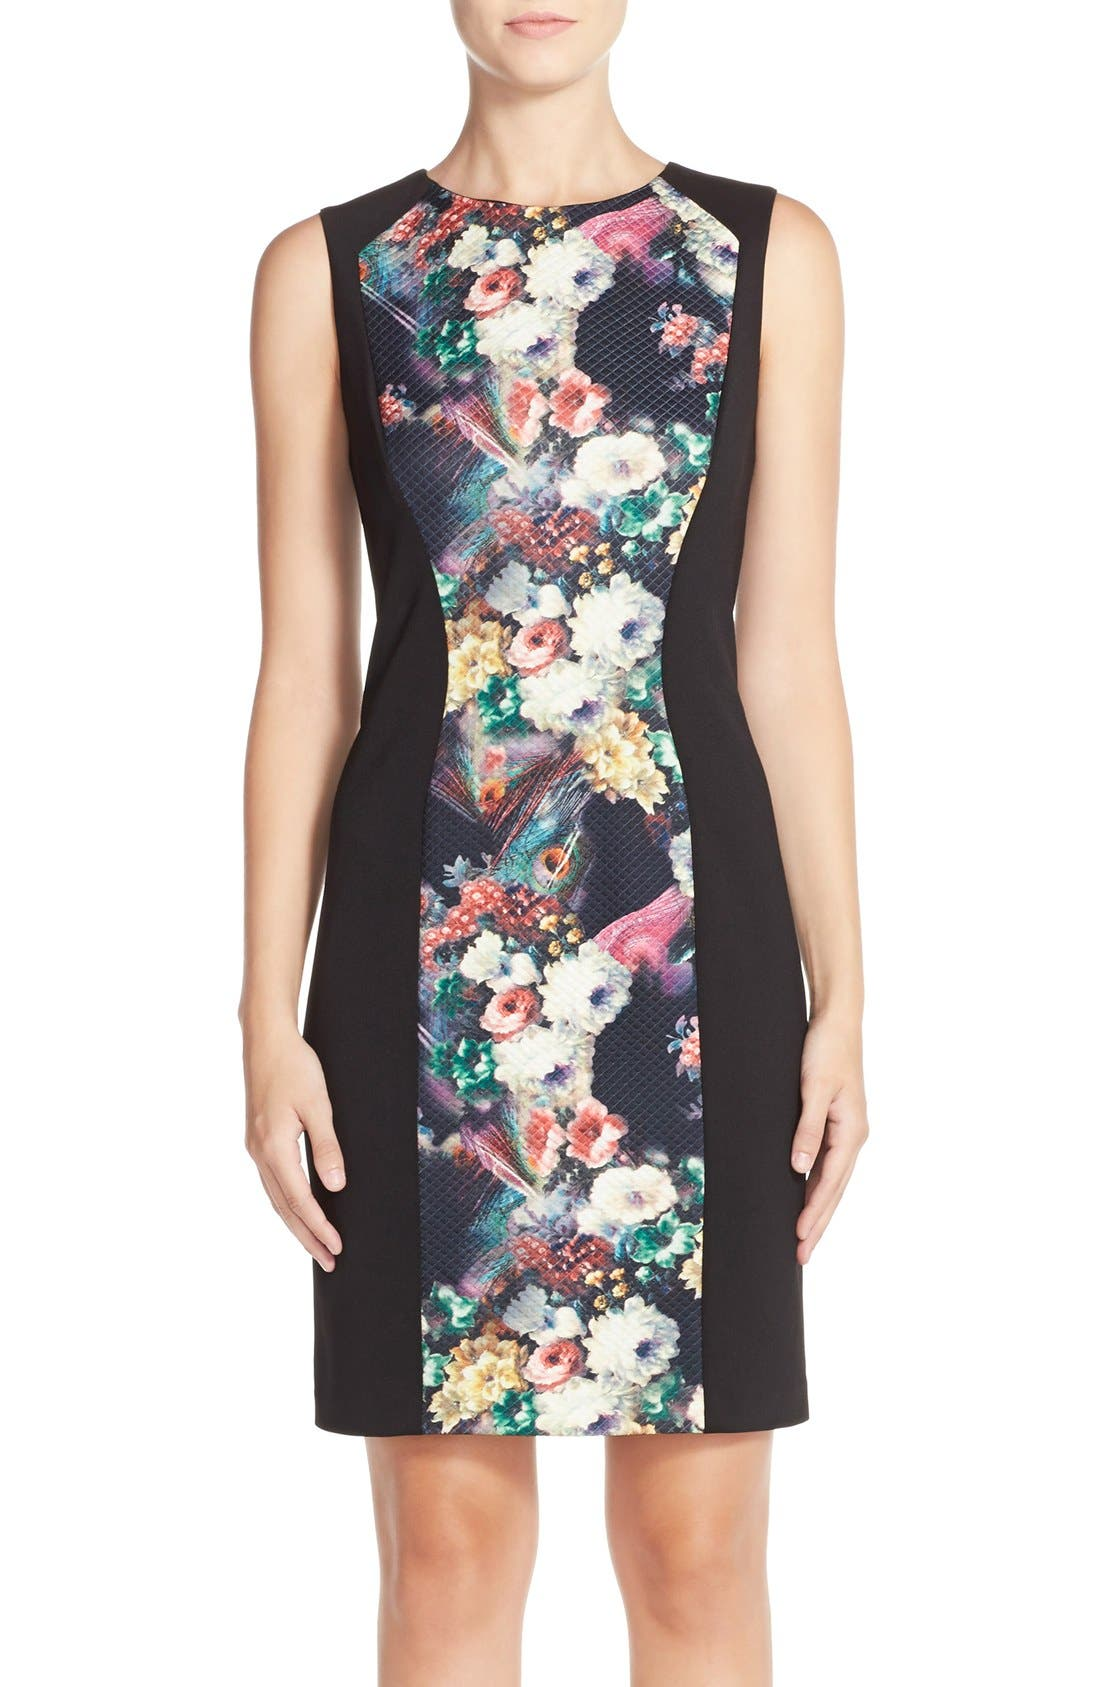 Alternate Image 1 Selected - Betsey Johnson Floral Print Knit Sheath Dress